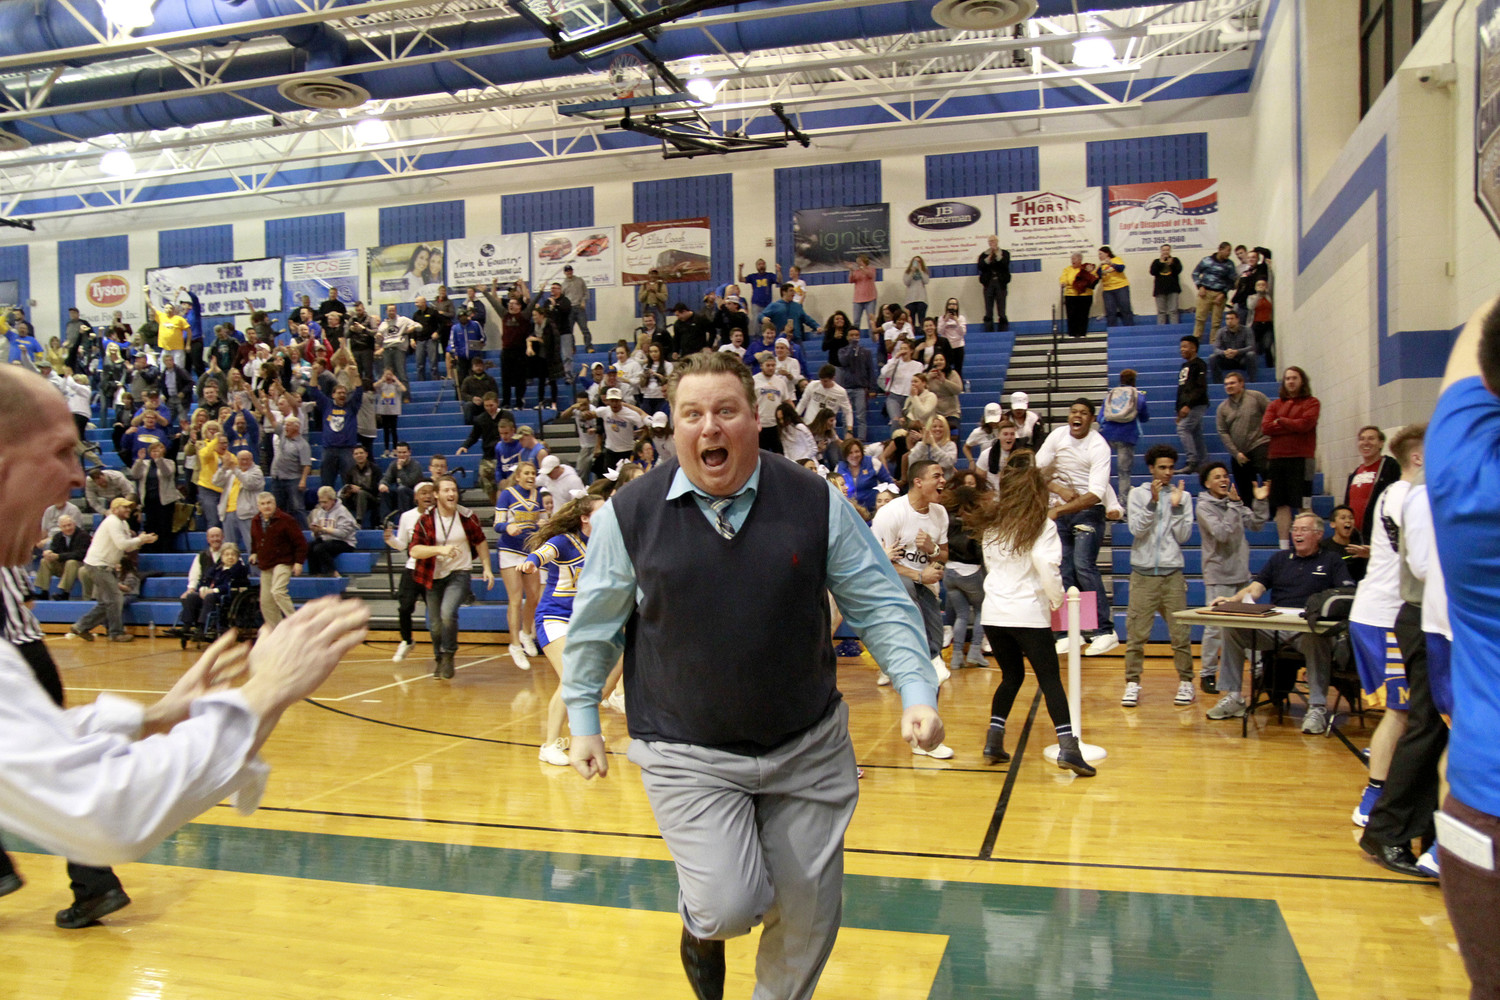 Middletown boys basketball head coach Chris Sattele celebrates after his team won Feb. 27, 2017, on a last-second shot to advance to the district finals.